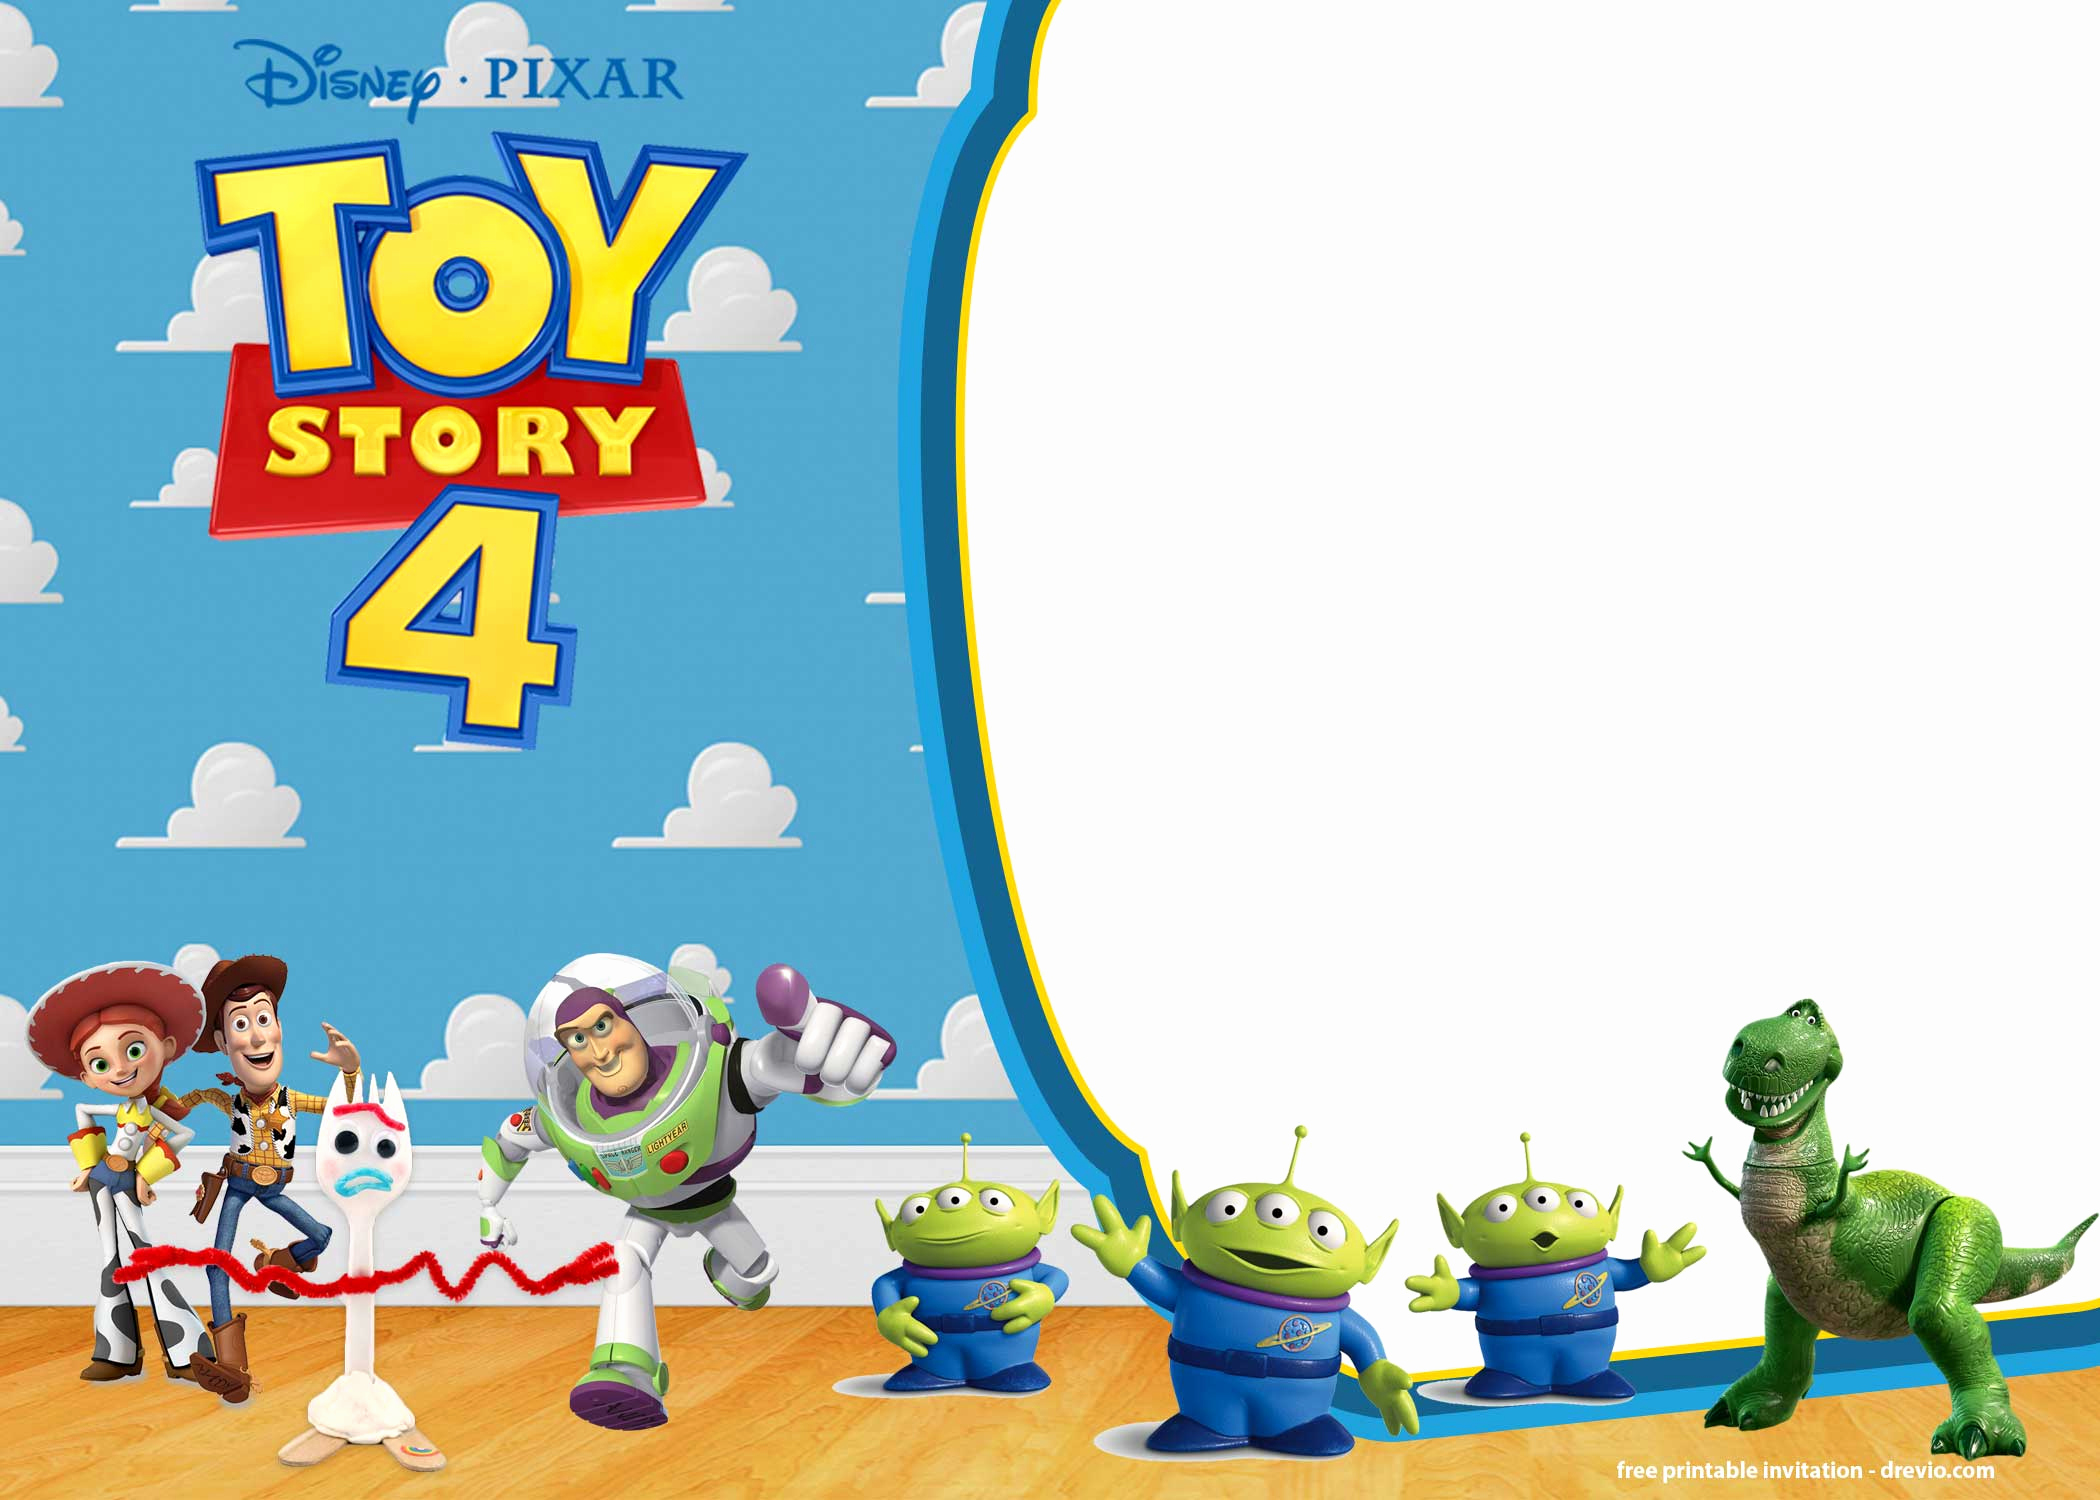 Toy Story Invitation Template Download Awesome Free Printable toy Story 4 Invitation Templates